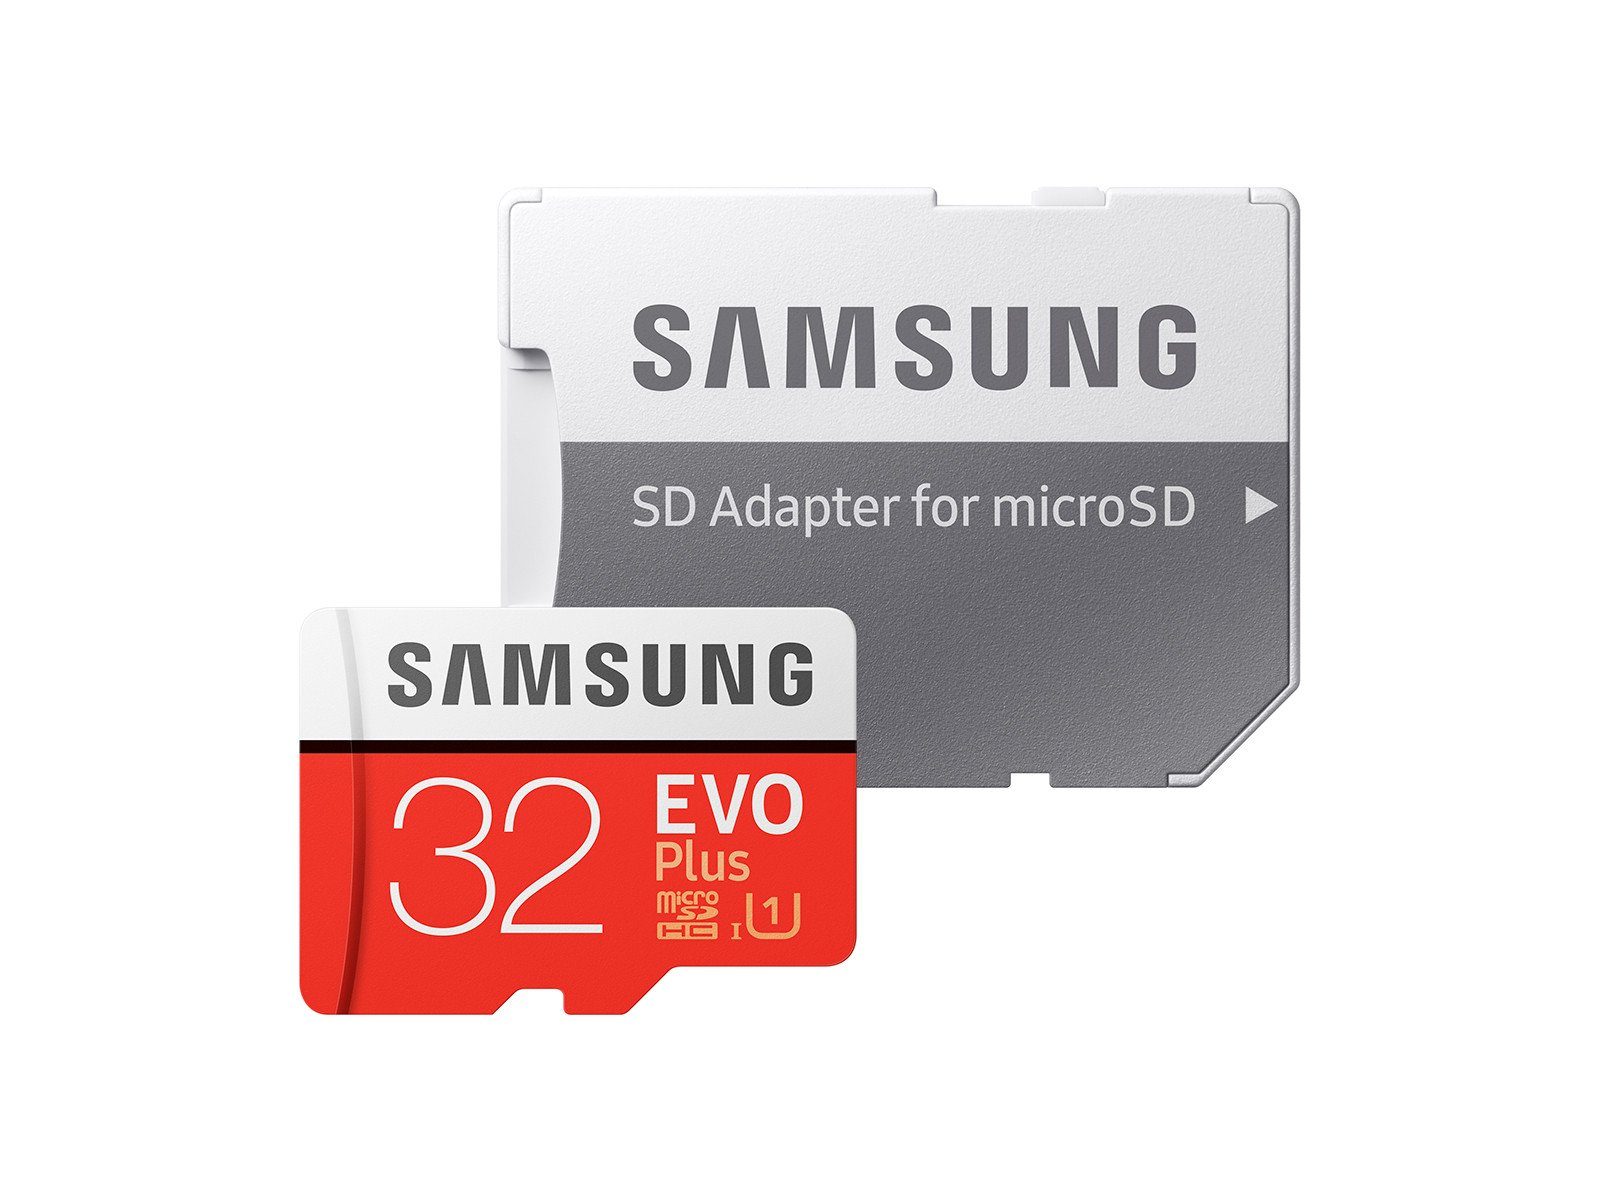 SAMSUNG 32GB EVO Plus MicroSDHC w/Adapter (2017 Model) 5 Samsung Original Models Available: MB-MC32GA, MB-MC64GA, MB-MC128GA, MB-MC256GA Compatible with a wide range of devices for both SD and micro SD (Includes Full-Size SD Adapter.) Excellent Performance for 4K UHD Video and broad compatibility across multiple applications